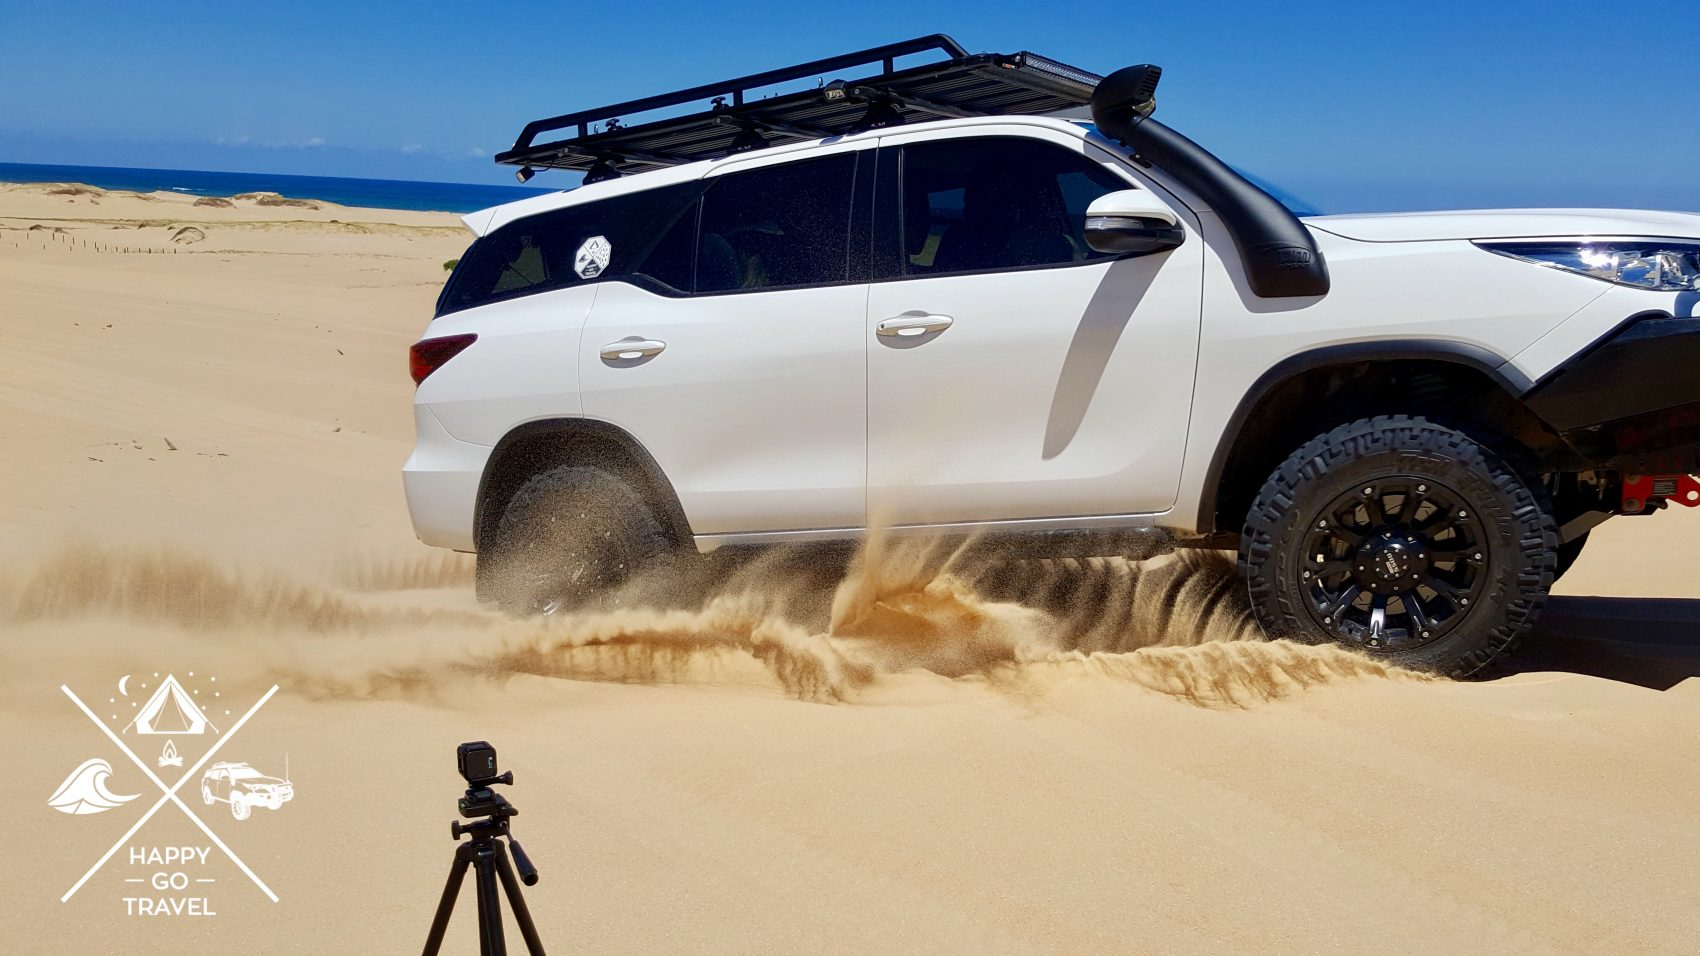 toyota fortuner on beach with roof rack